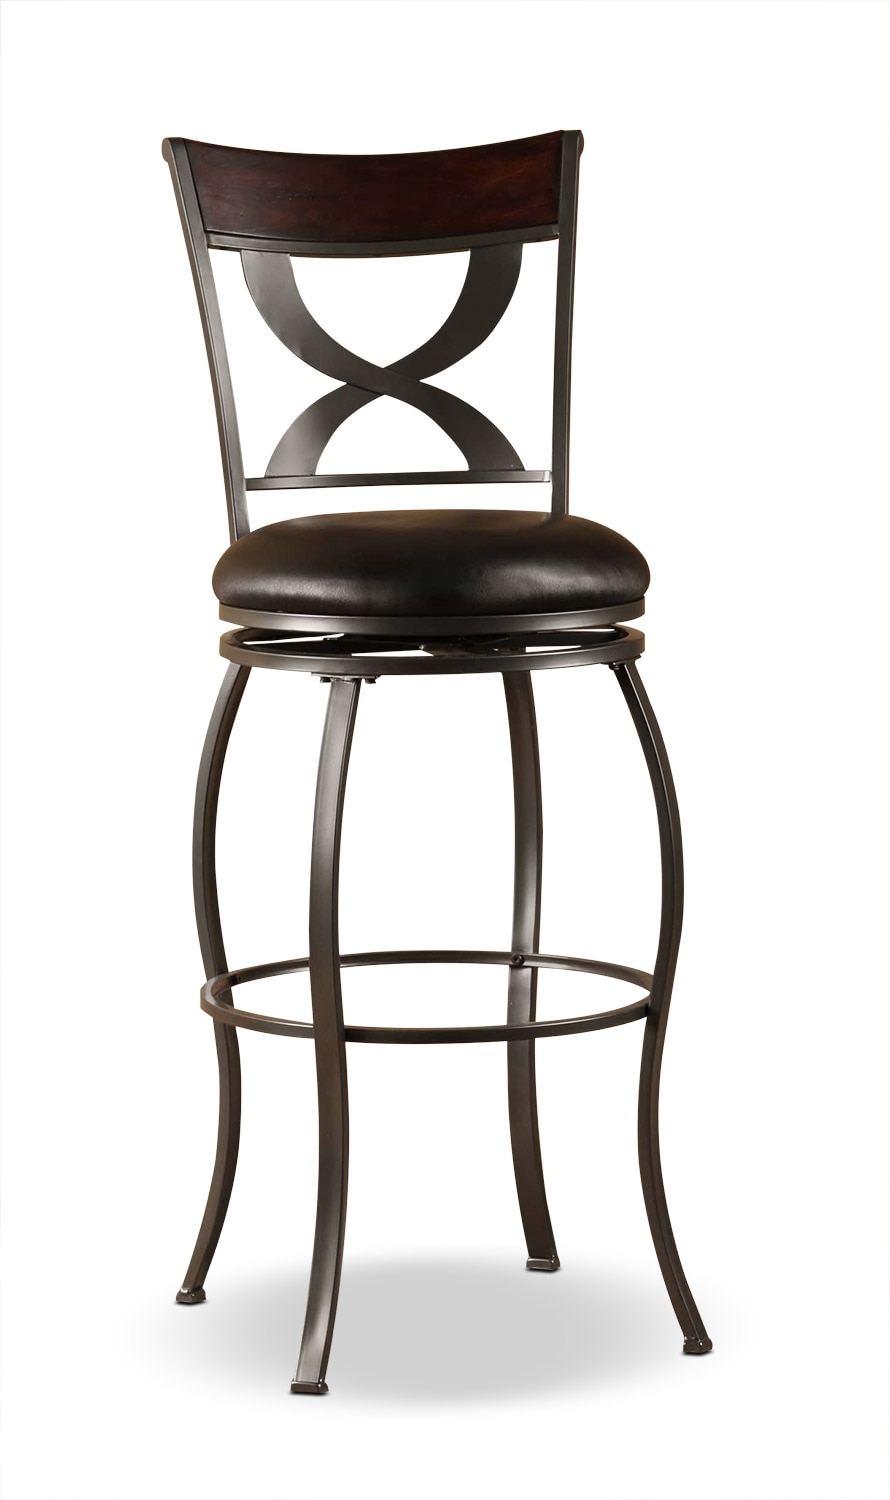 Dining Room Furniture - Stockport Counter-Height Swivel Stool